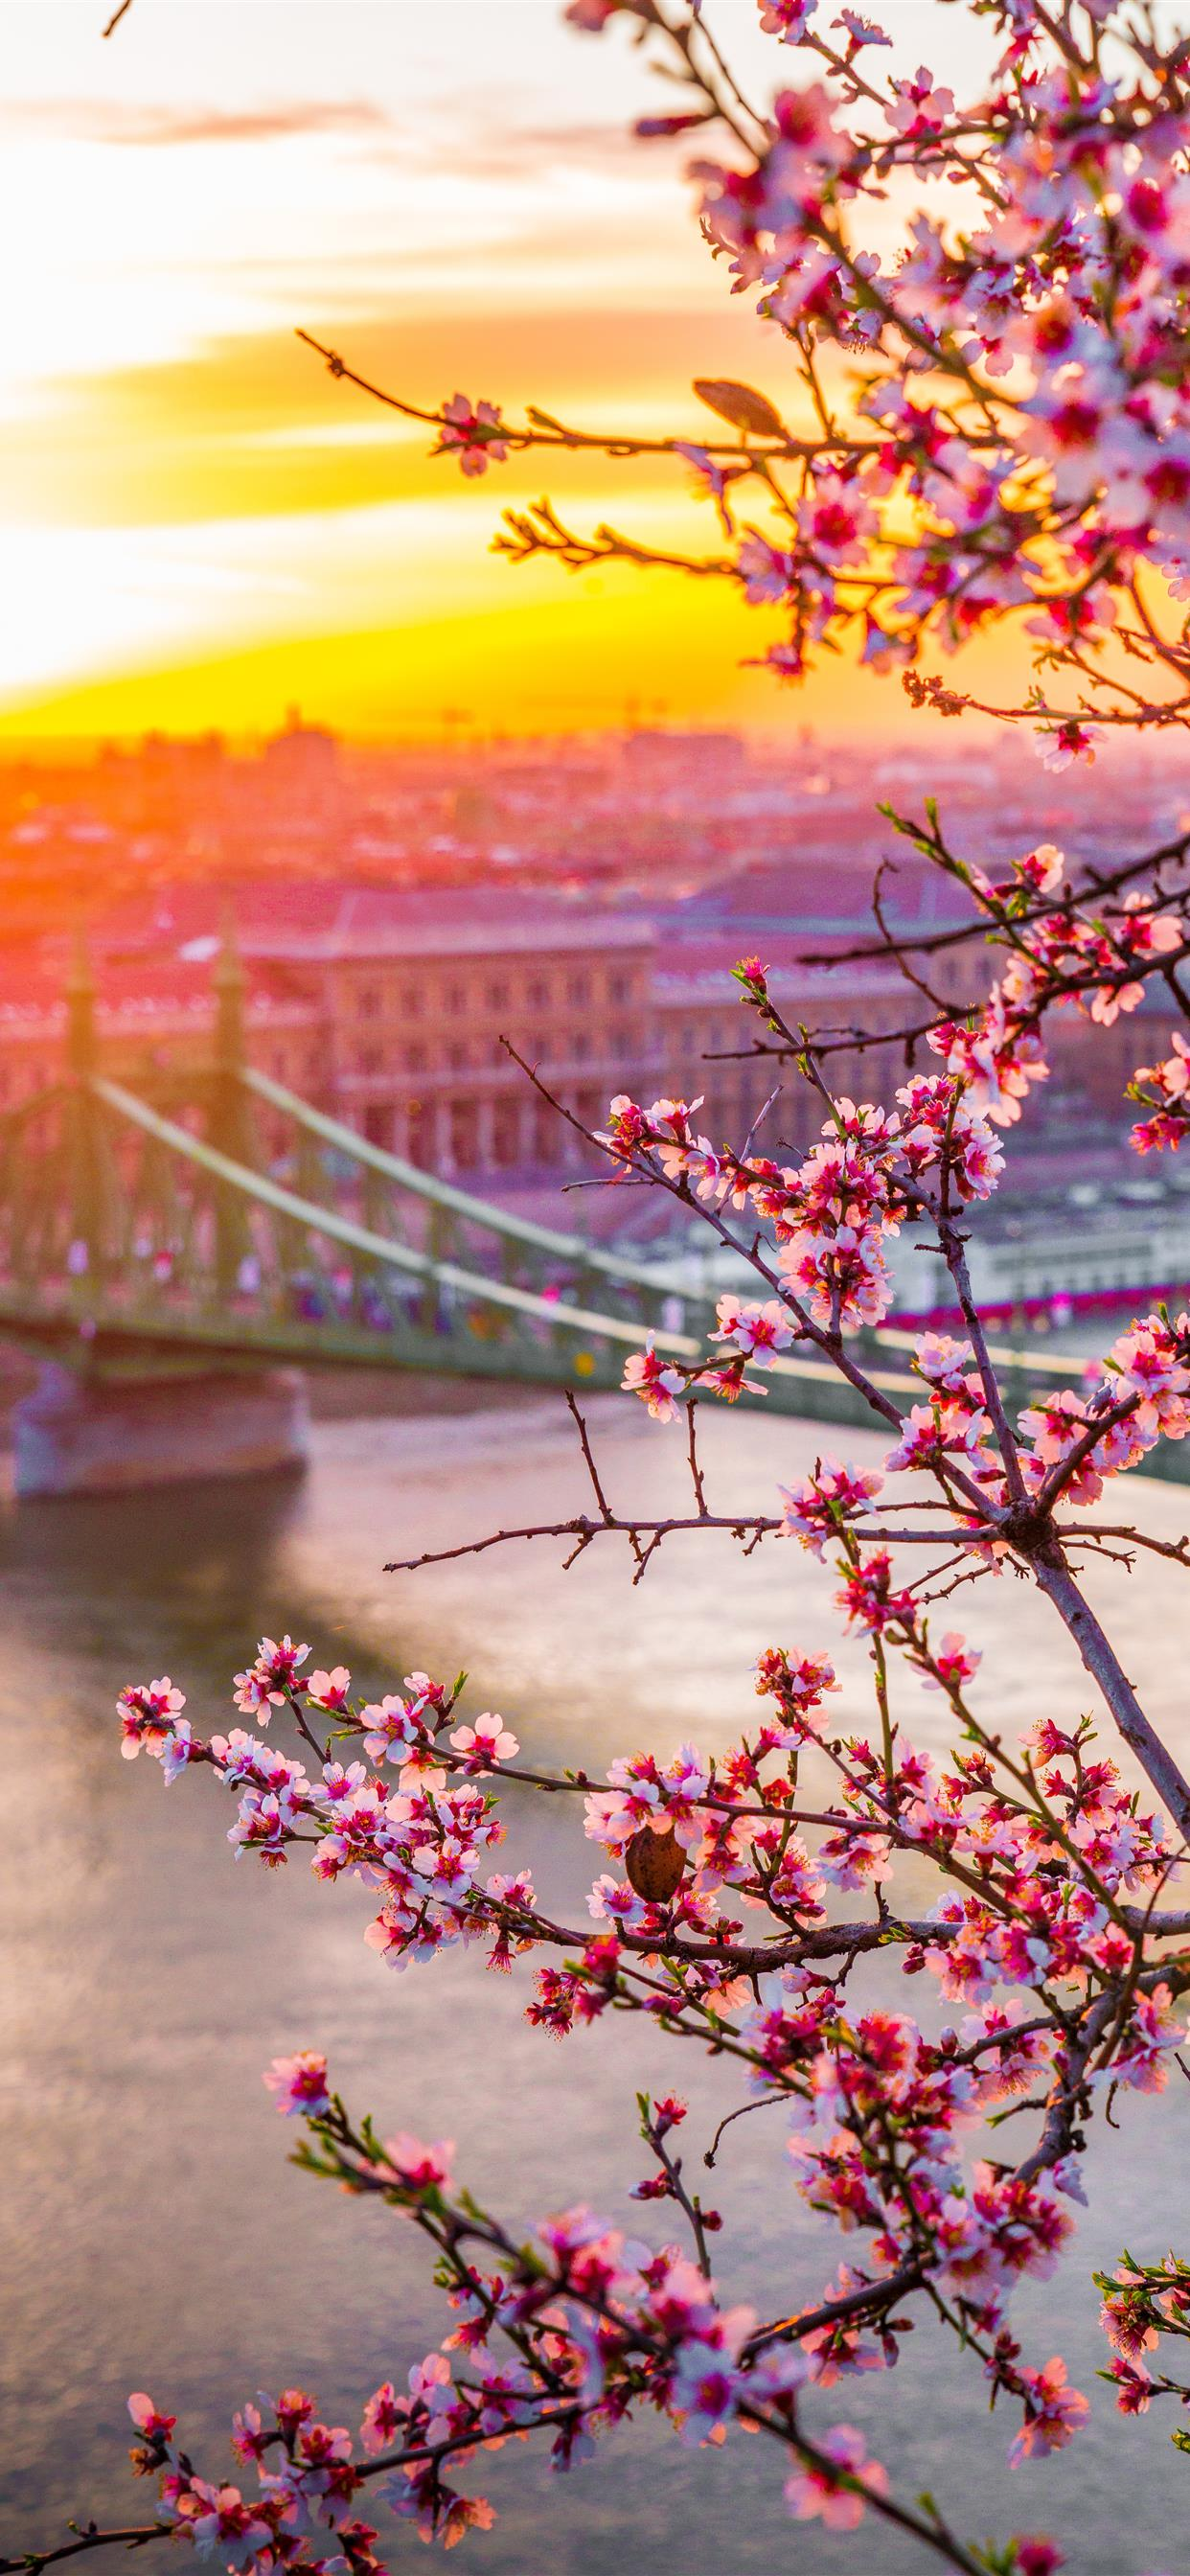 Liberty Bridge In Hungary Spring Edition Iphone Wallpapers Free